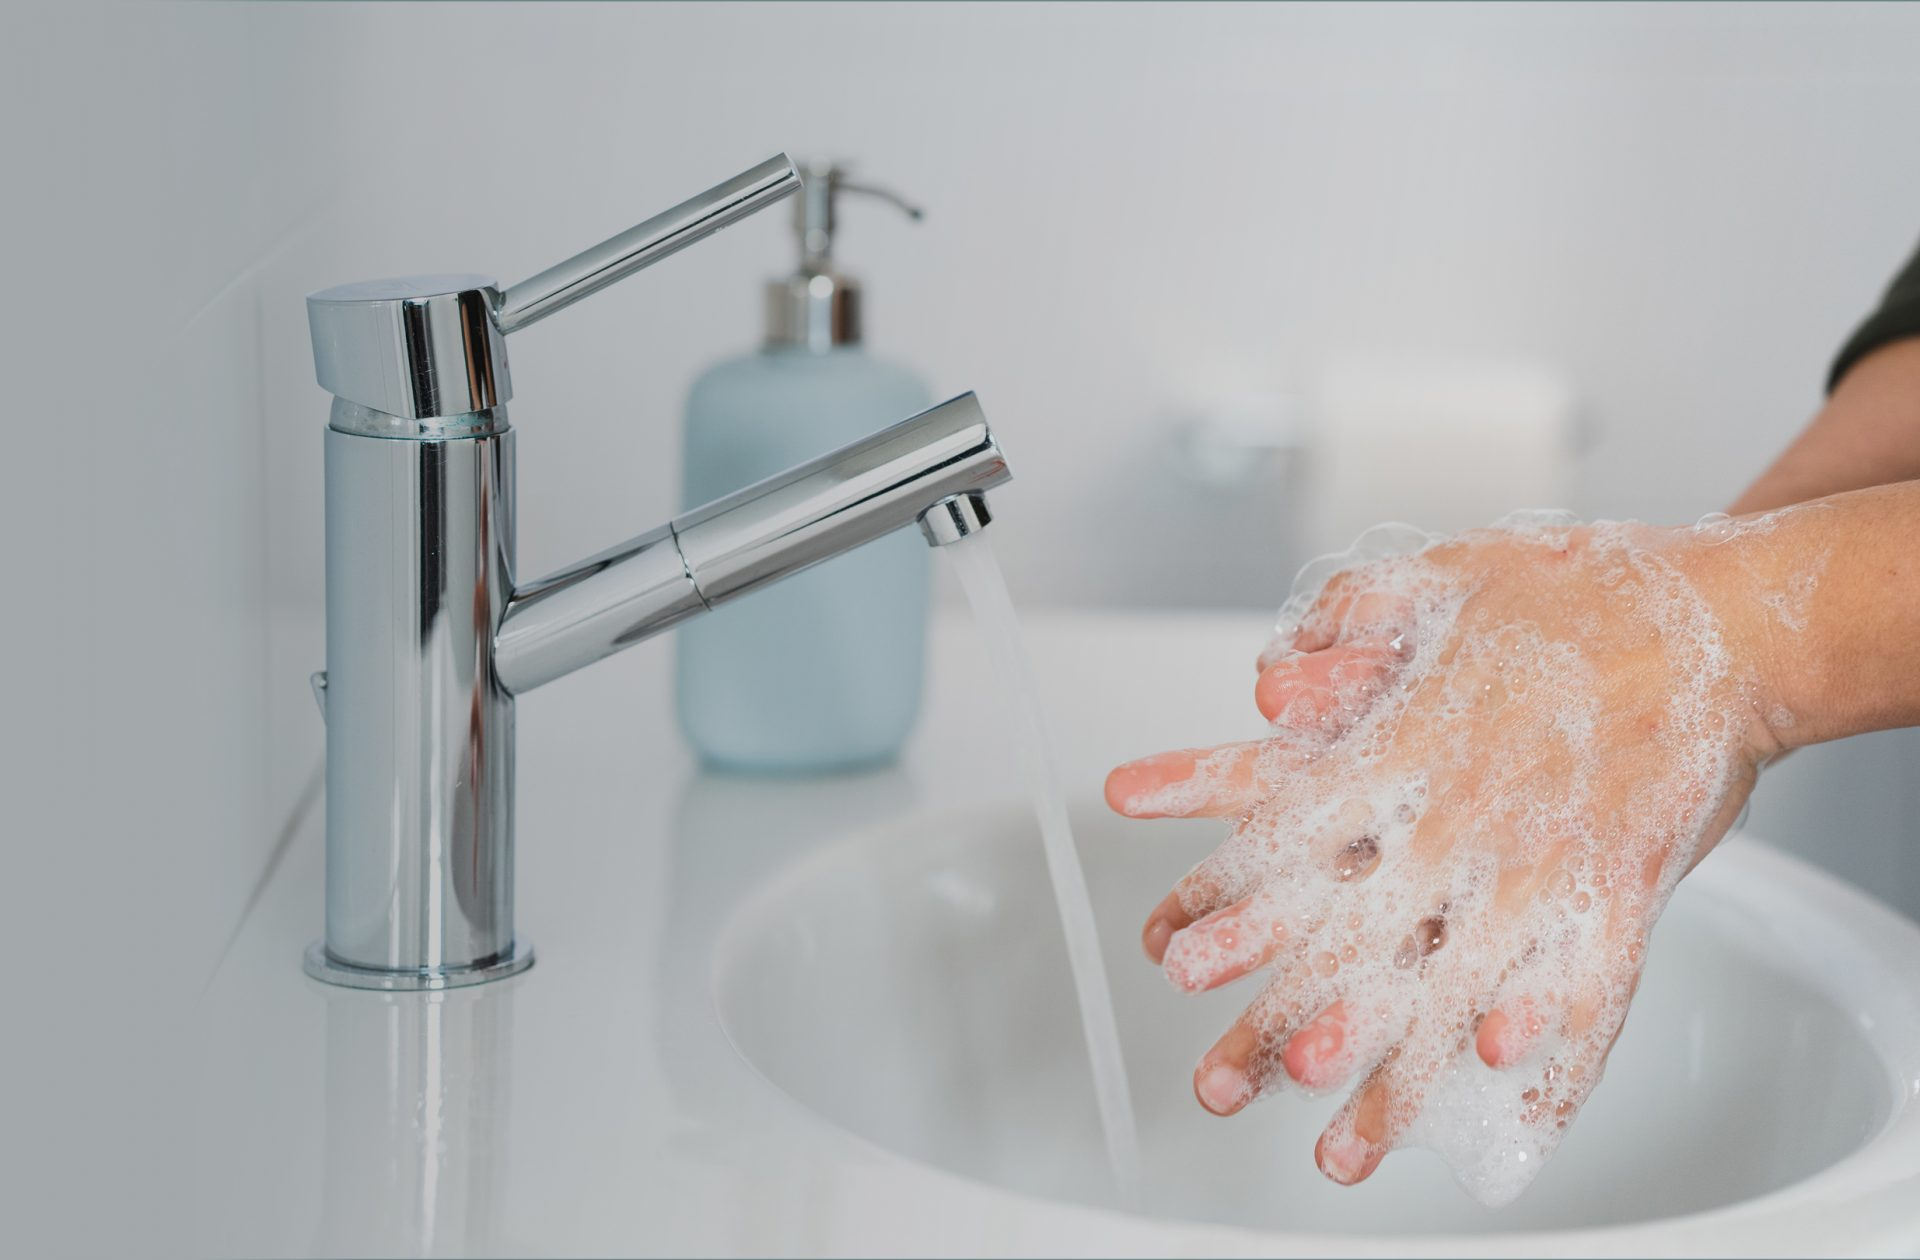 person washing their hands in a gray bathroom